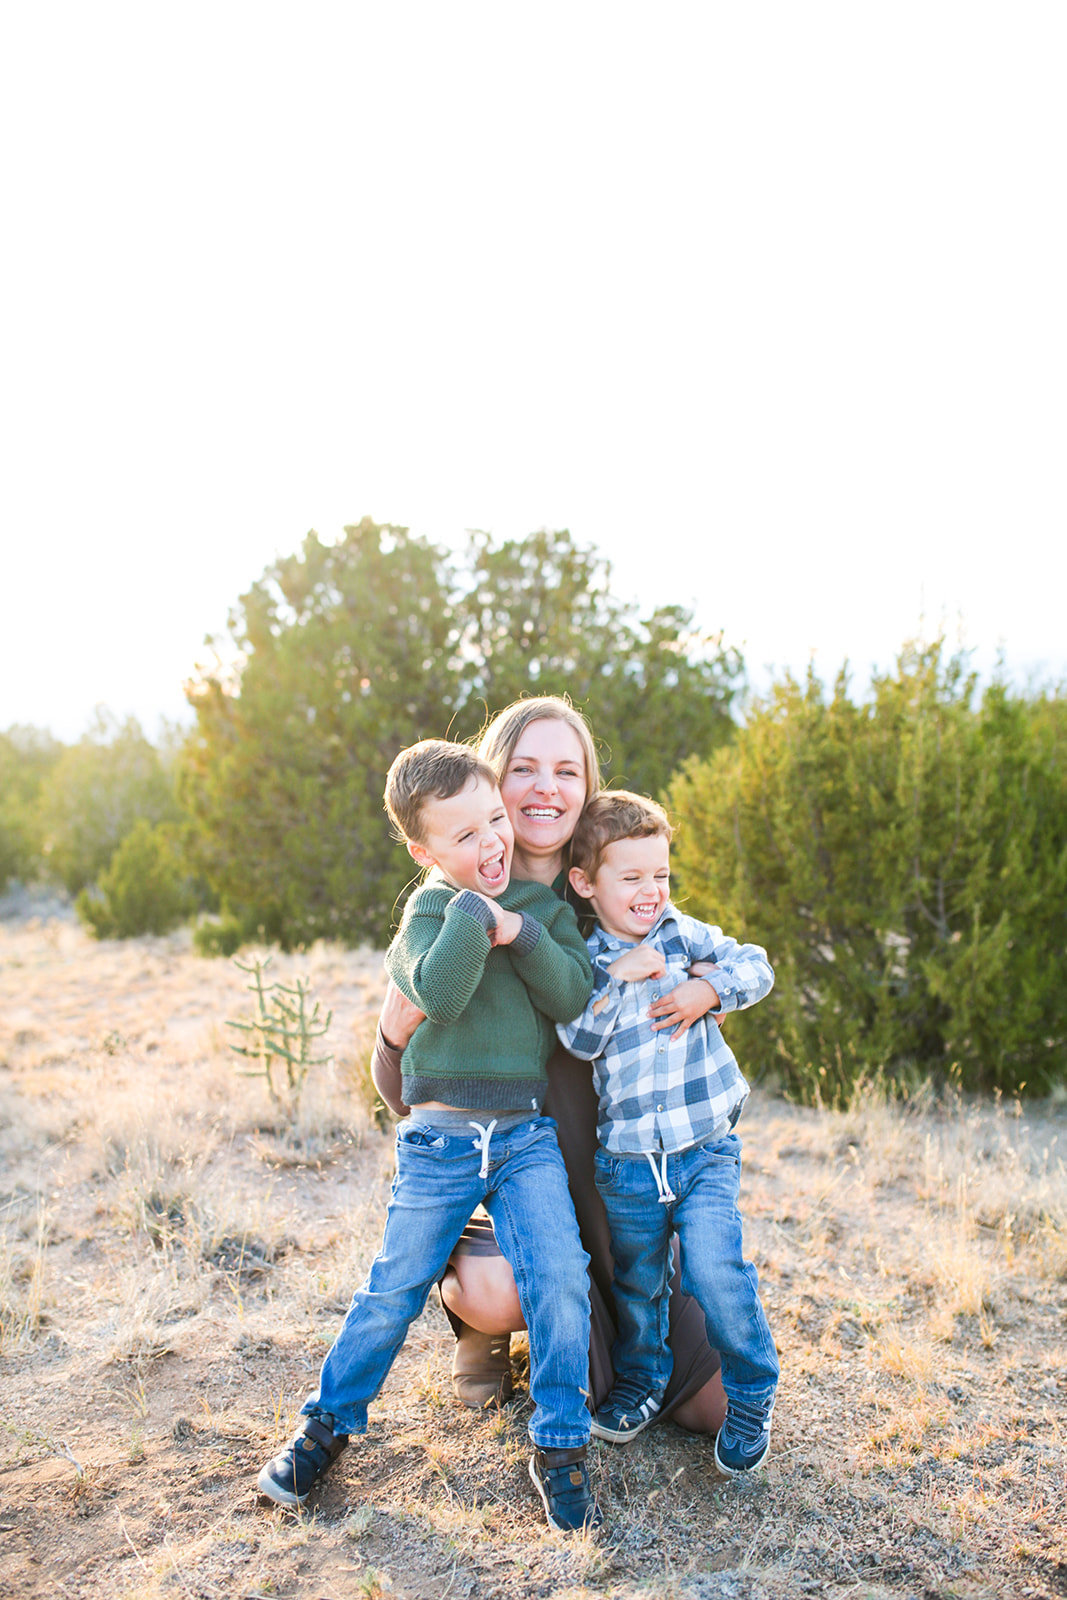 Albuquerque Family Photography_Foothills_www.tylerbrooke.com_Kate Kauffman_027